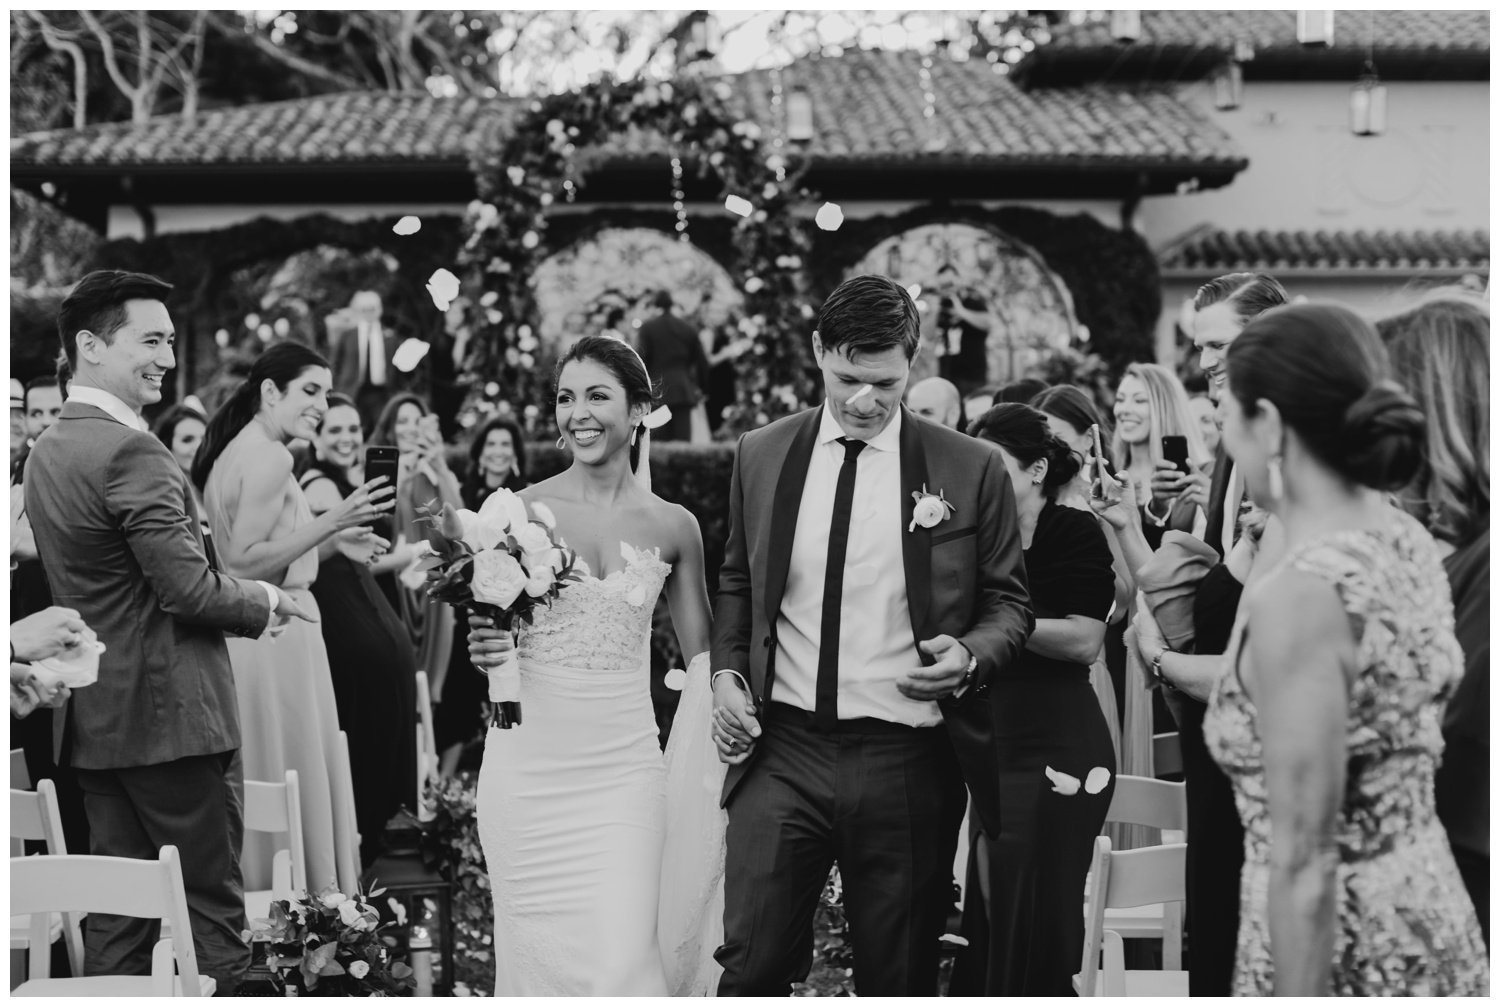 adriana_rivera_miranda_weddings_el_salvador_72.jpg